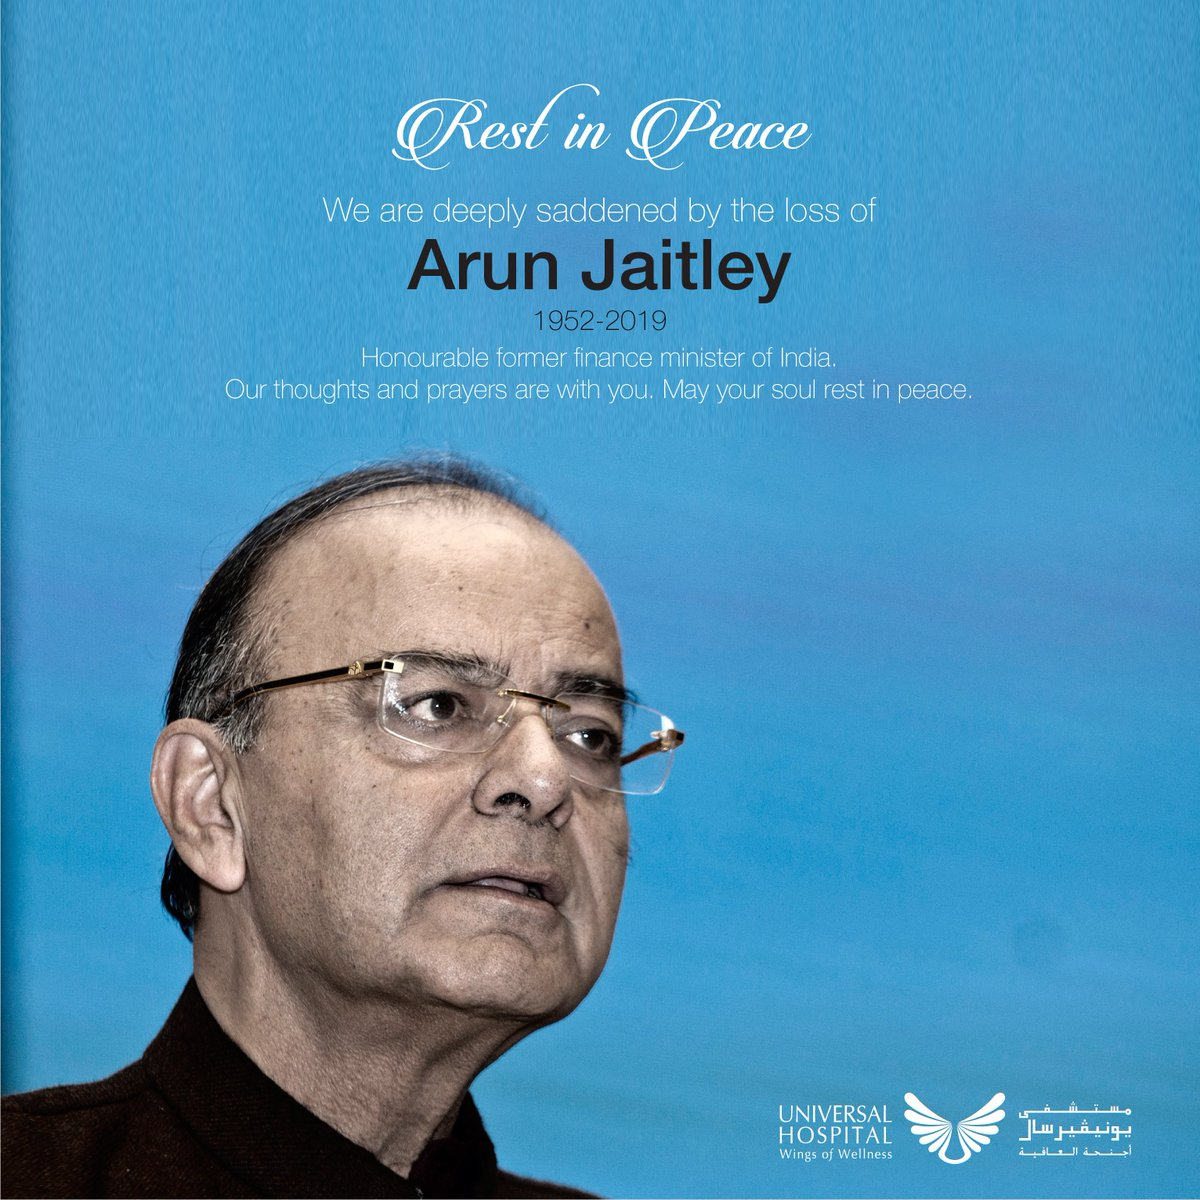 Deeply grieved at the passing away of Shri Arun Jaitley, Former Indian finance minister. A towering political figure who influenced an entire generation.   May his soul rest in peace.